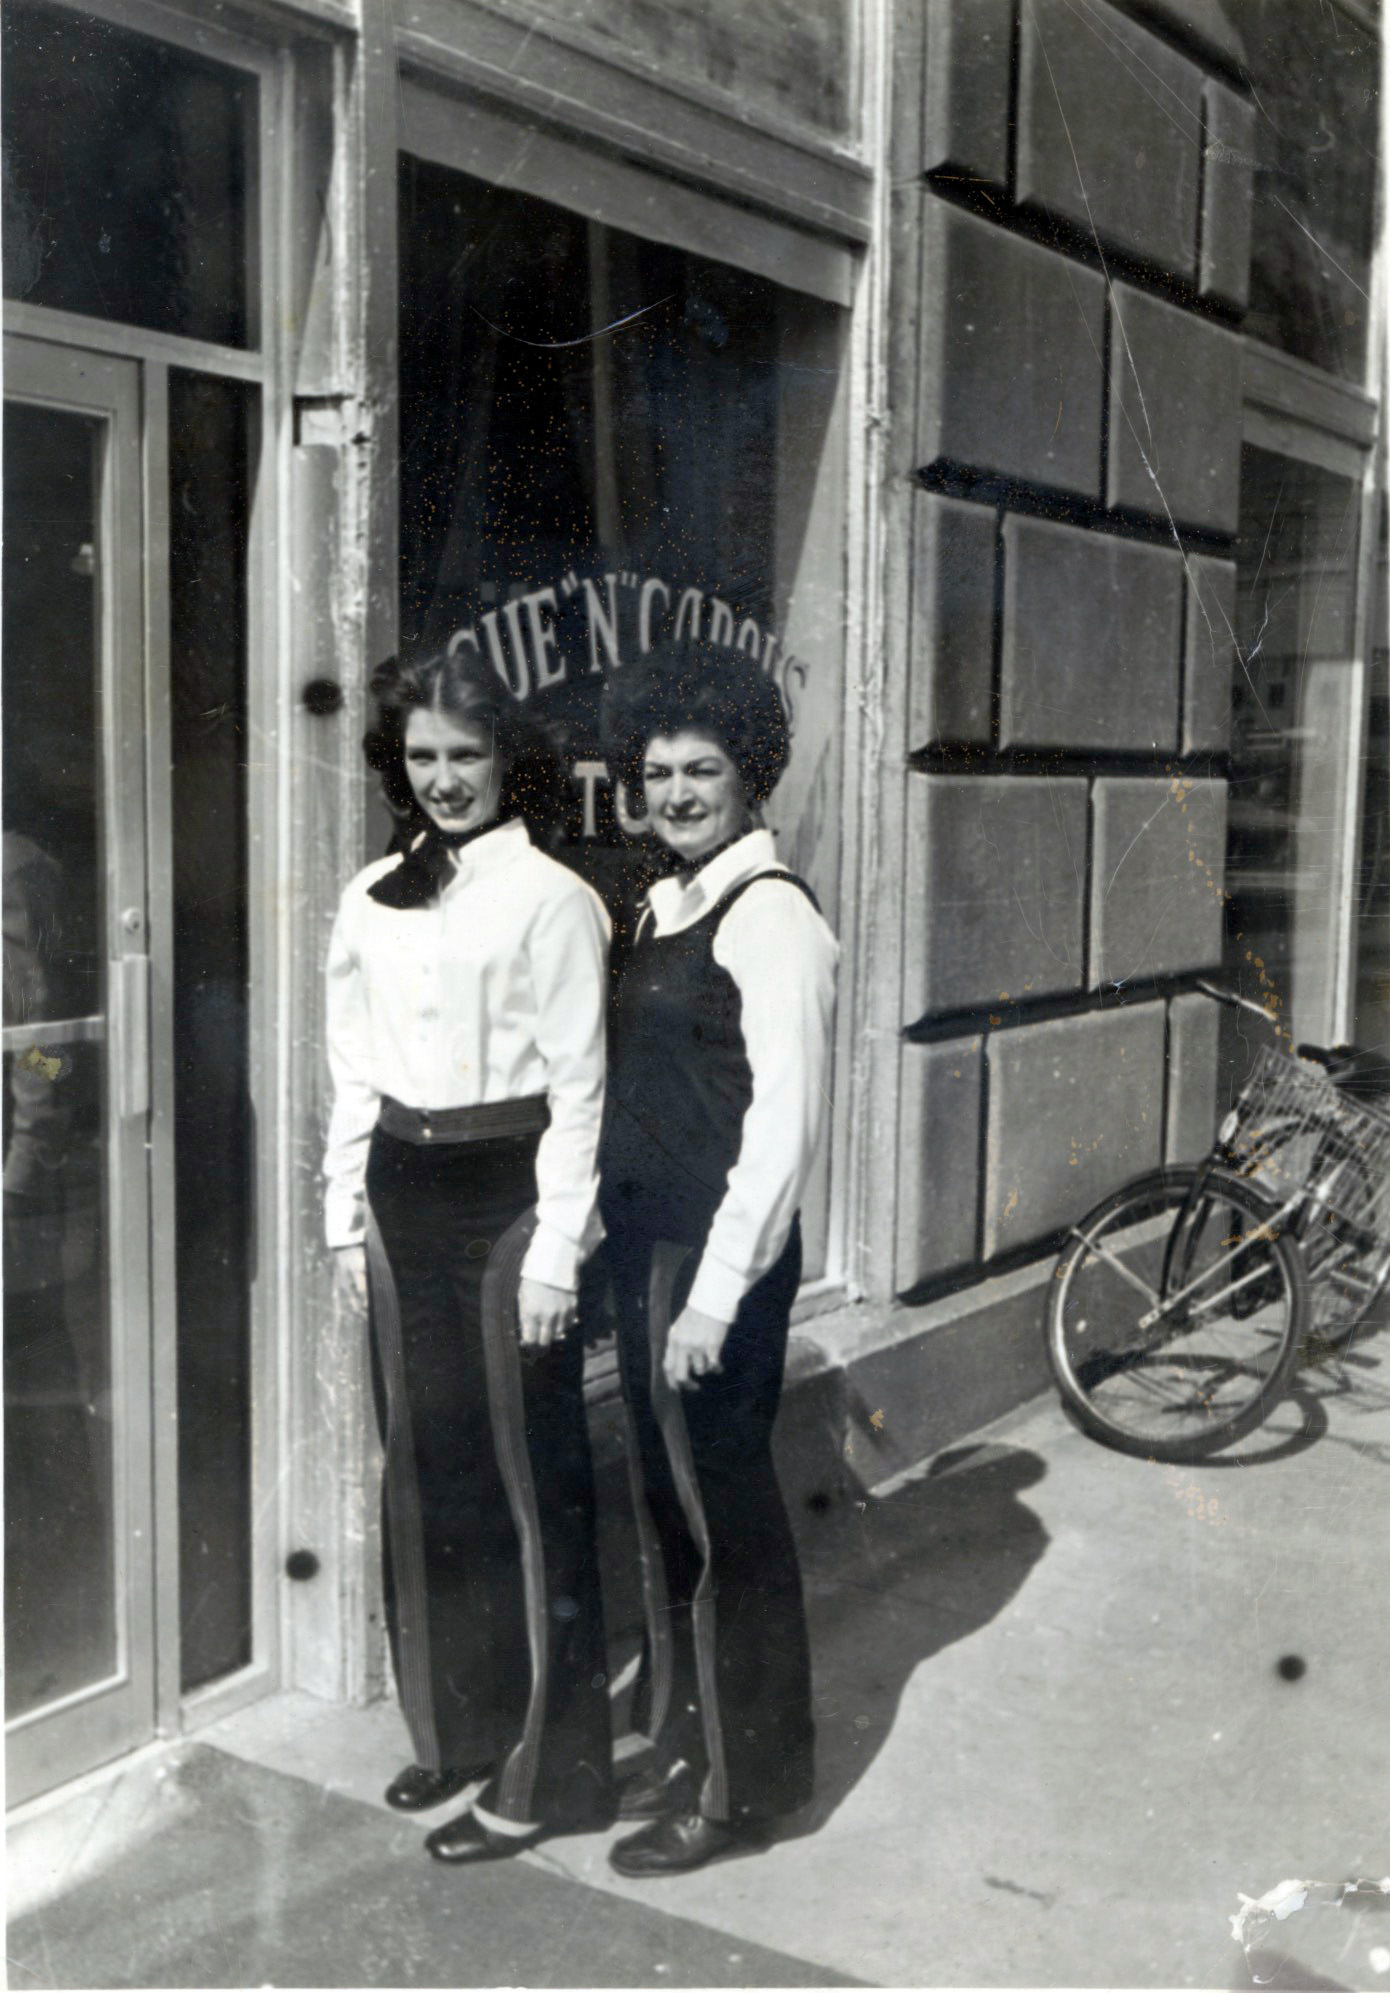 ^ Carol and Sue stand in front of Sue N Carol's which was located in the Grim Hotel in the mid to late '70s. The restaurant moved to State Line in 1980.